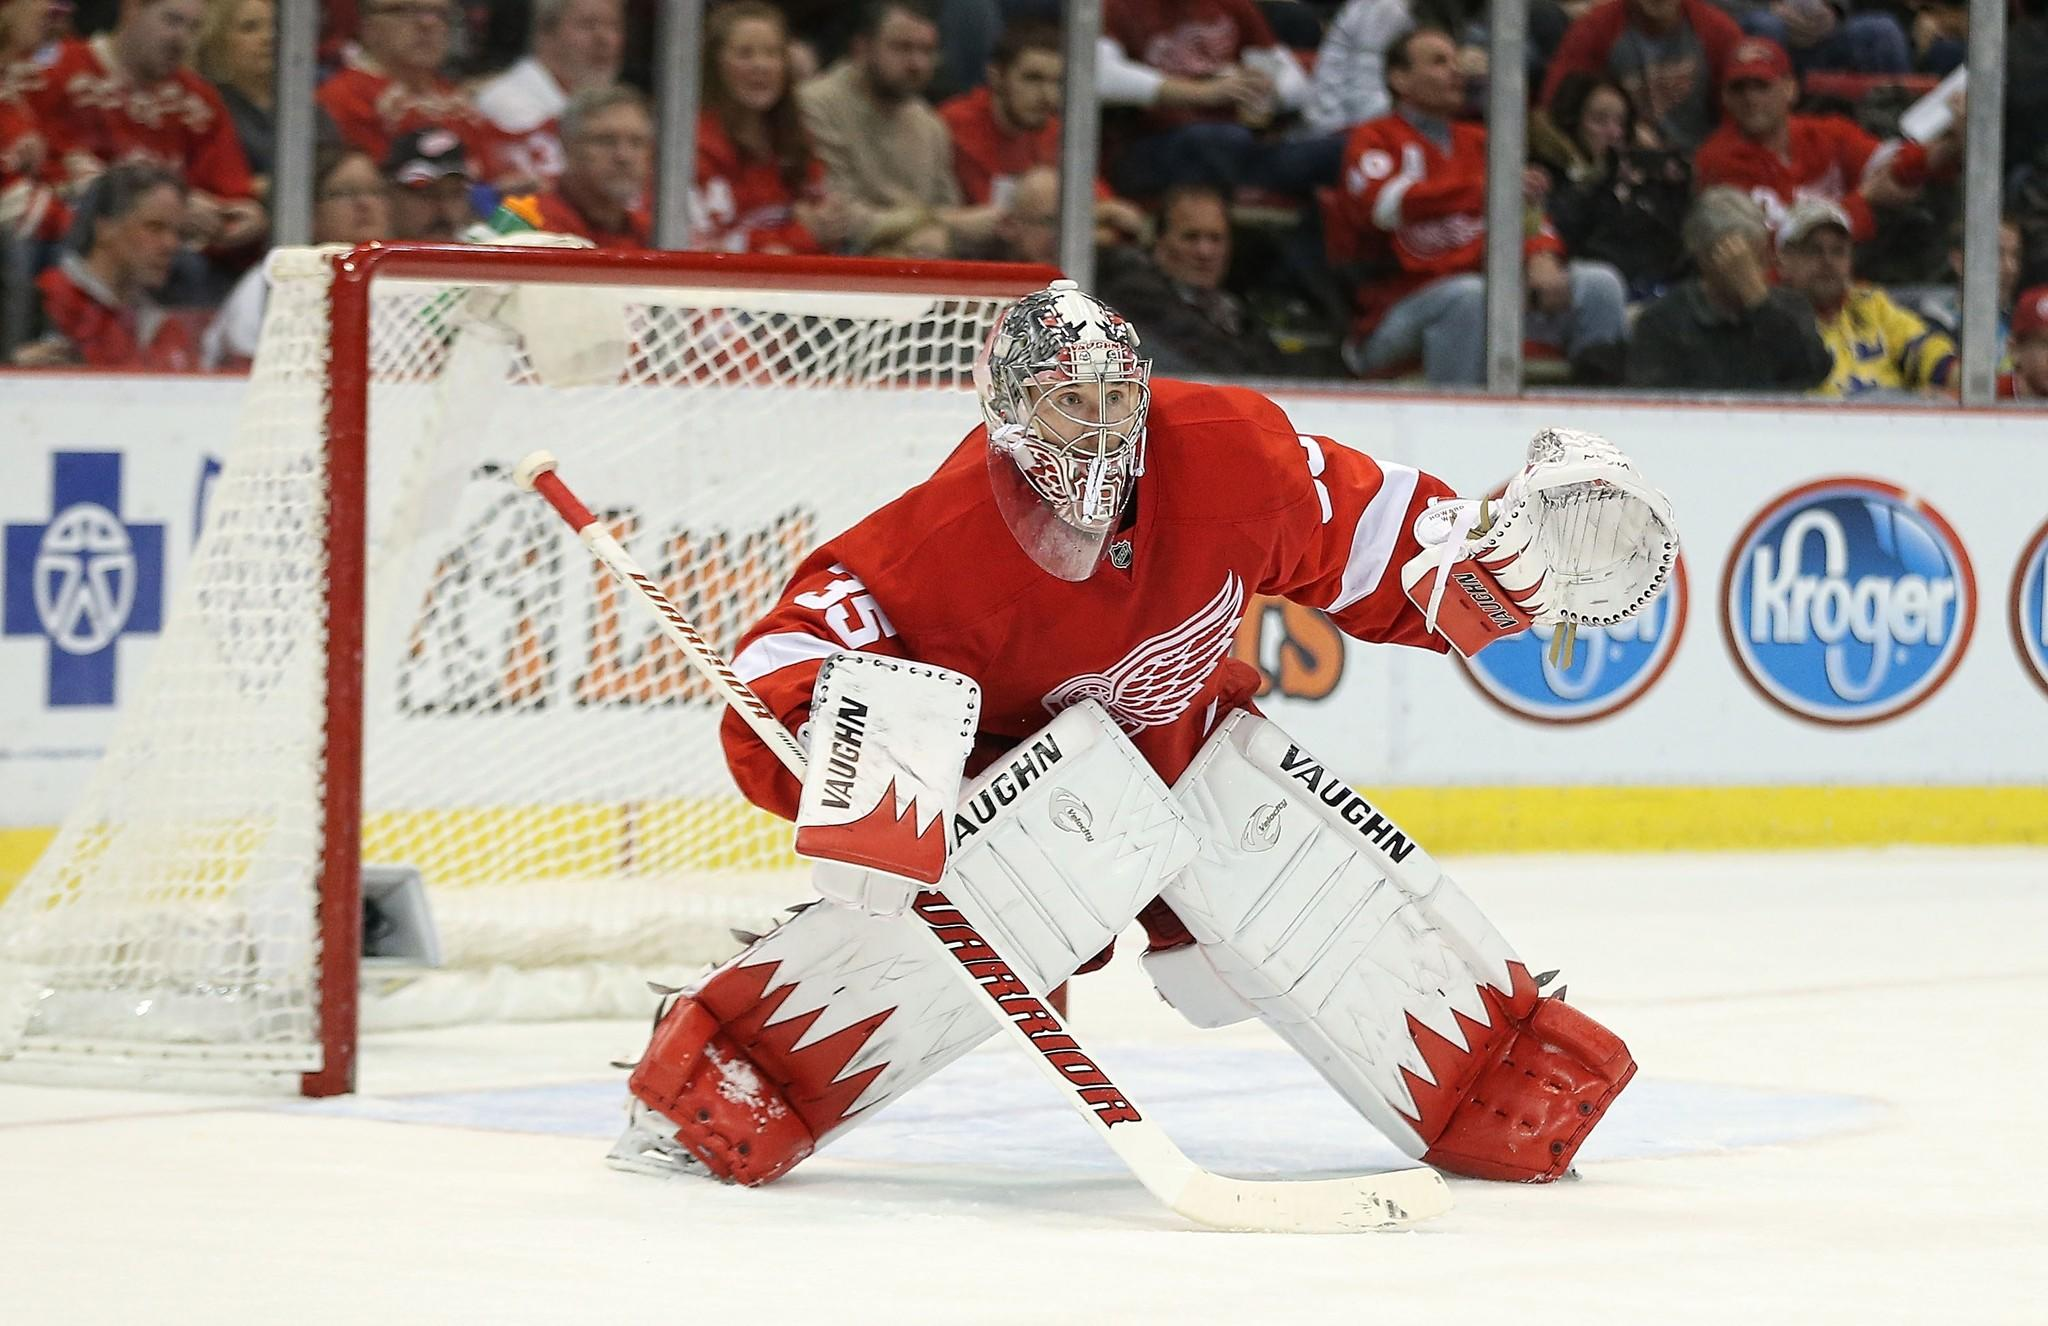 Jimmy Howard looks for the puck during the second period against the Kings.